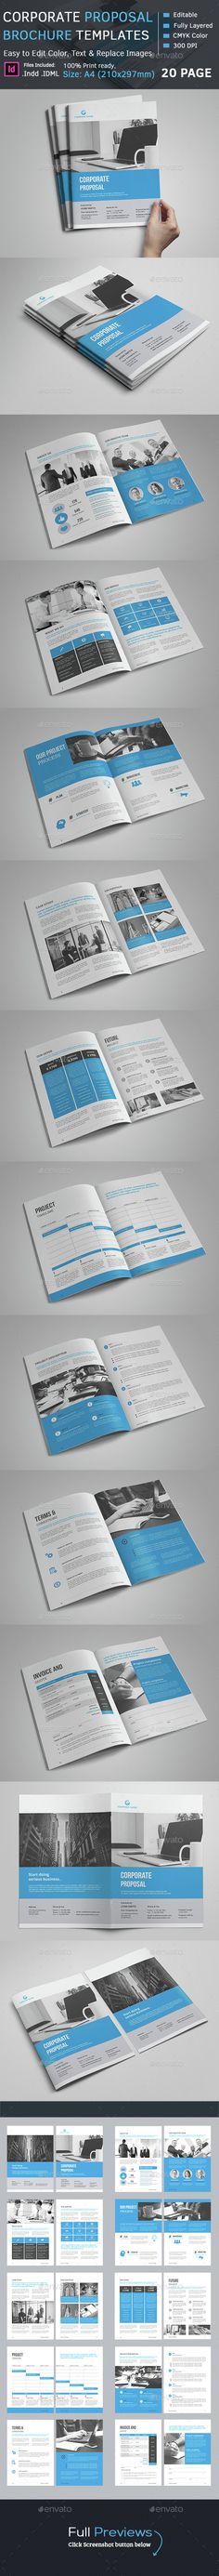 Proposal Template u2014 Photoshop PSD #company proposal #corporate - professional proposal templates